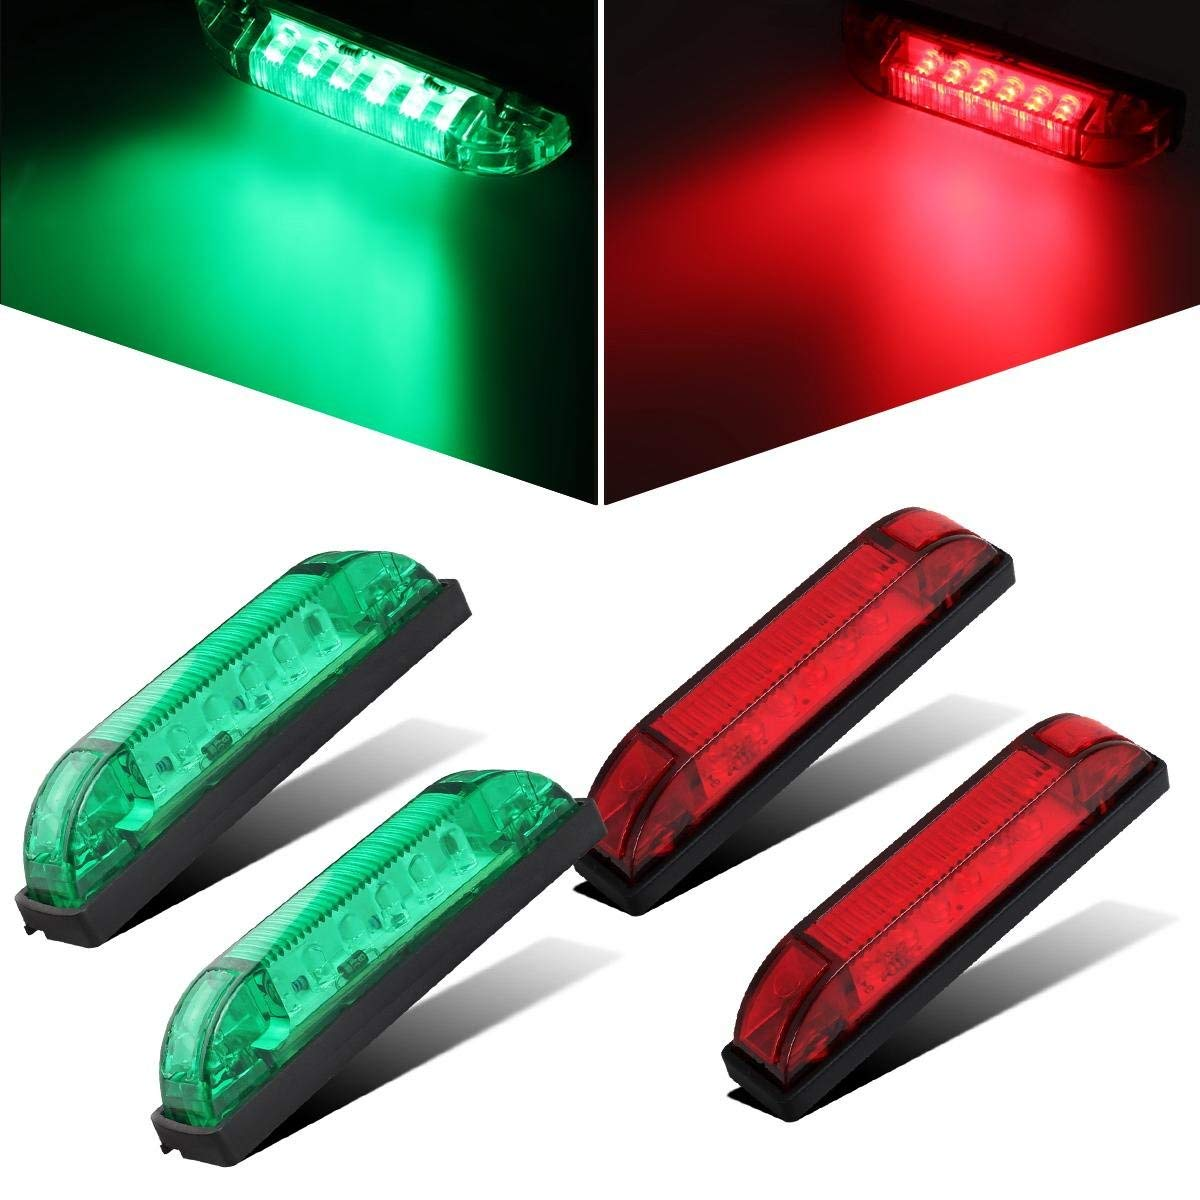 NPAUTO 8 Marine Led Utility Strip Light Red /& Green Utility Light Bar Waterproof LED Boat Navigation Light Trailer Lights Marine Led Marker Lights Clearance Lamps